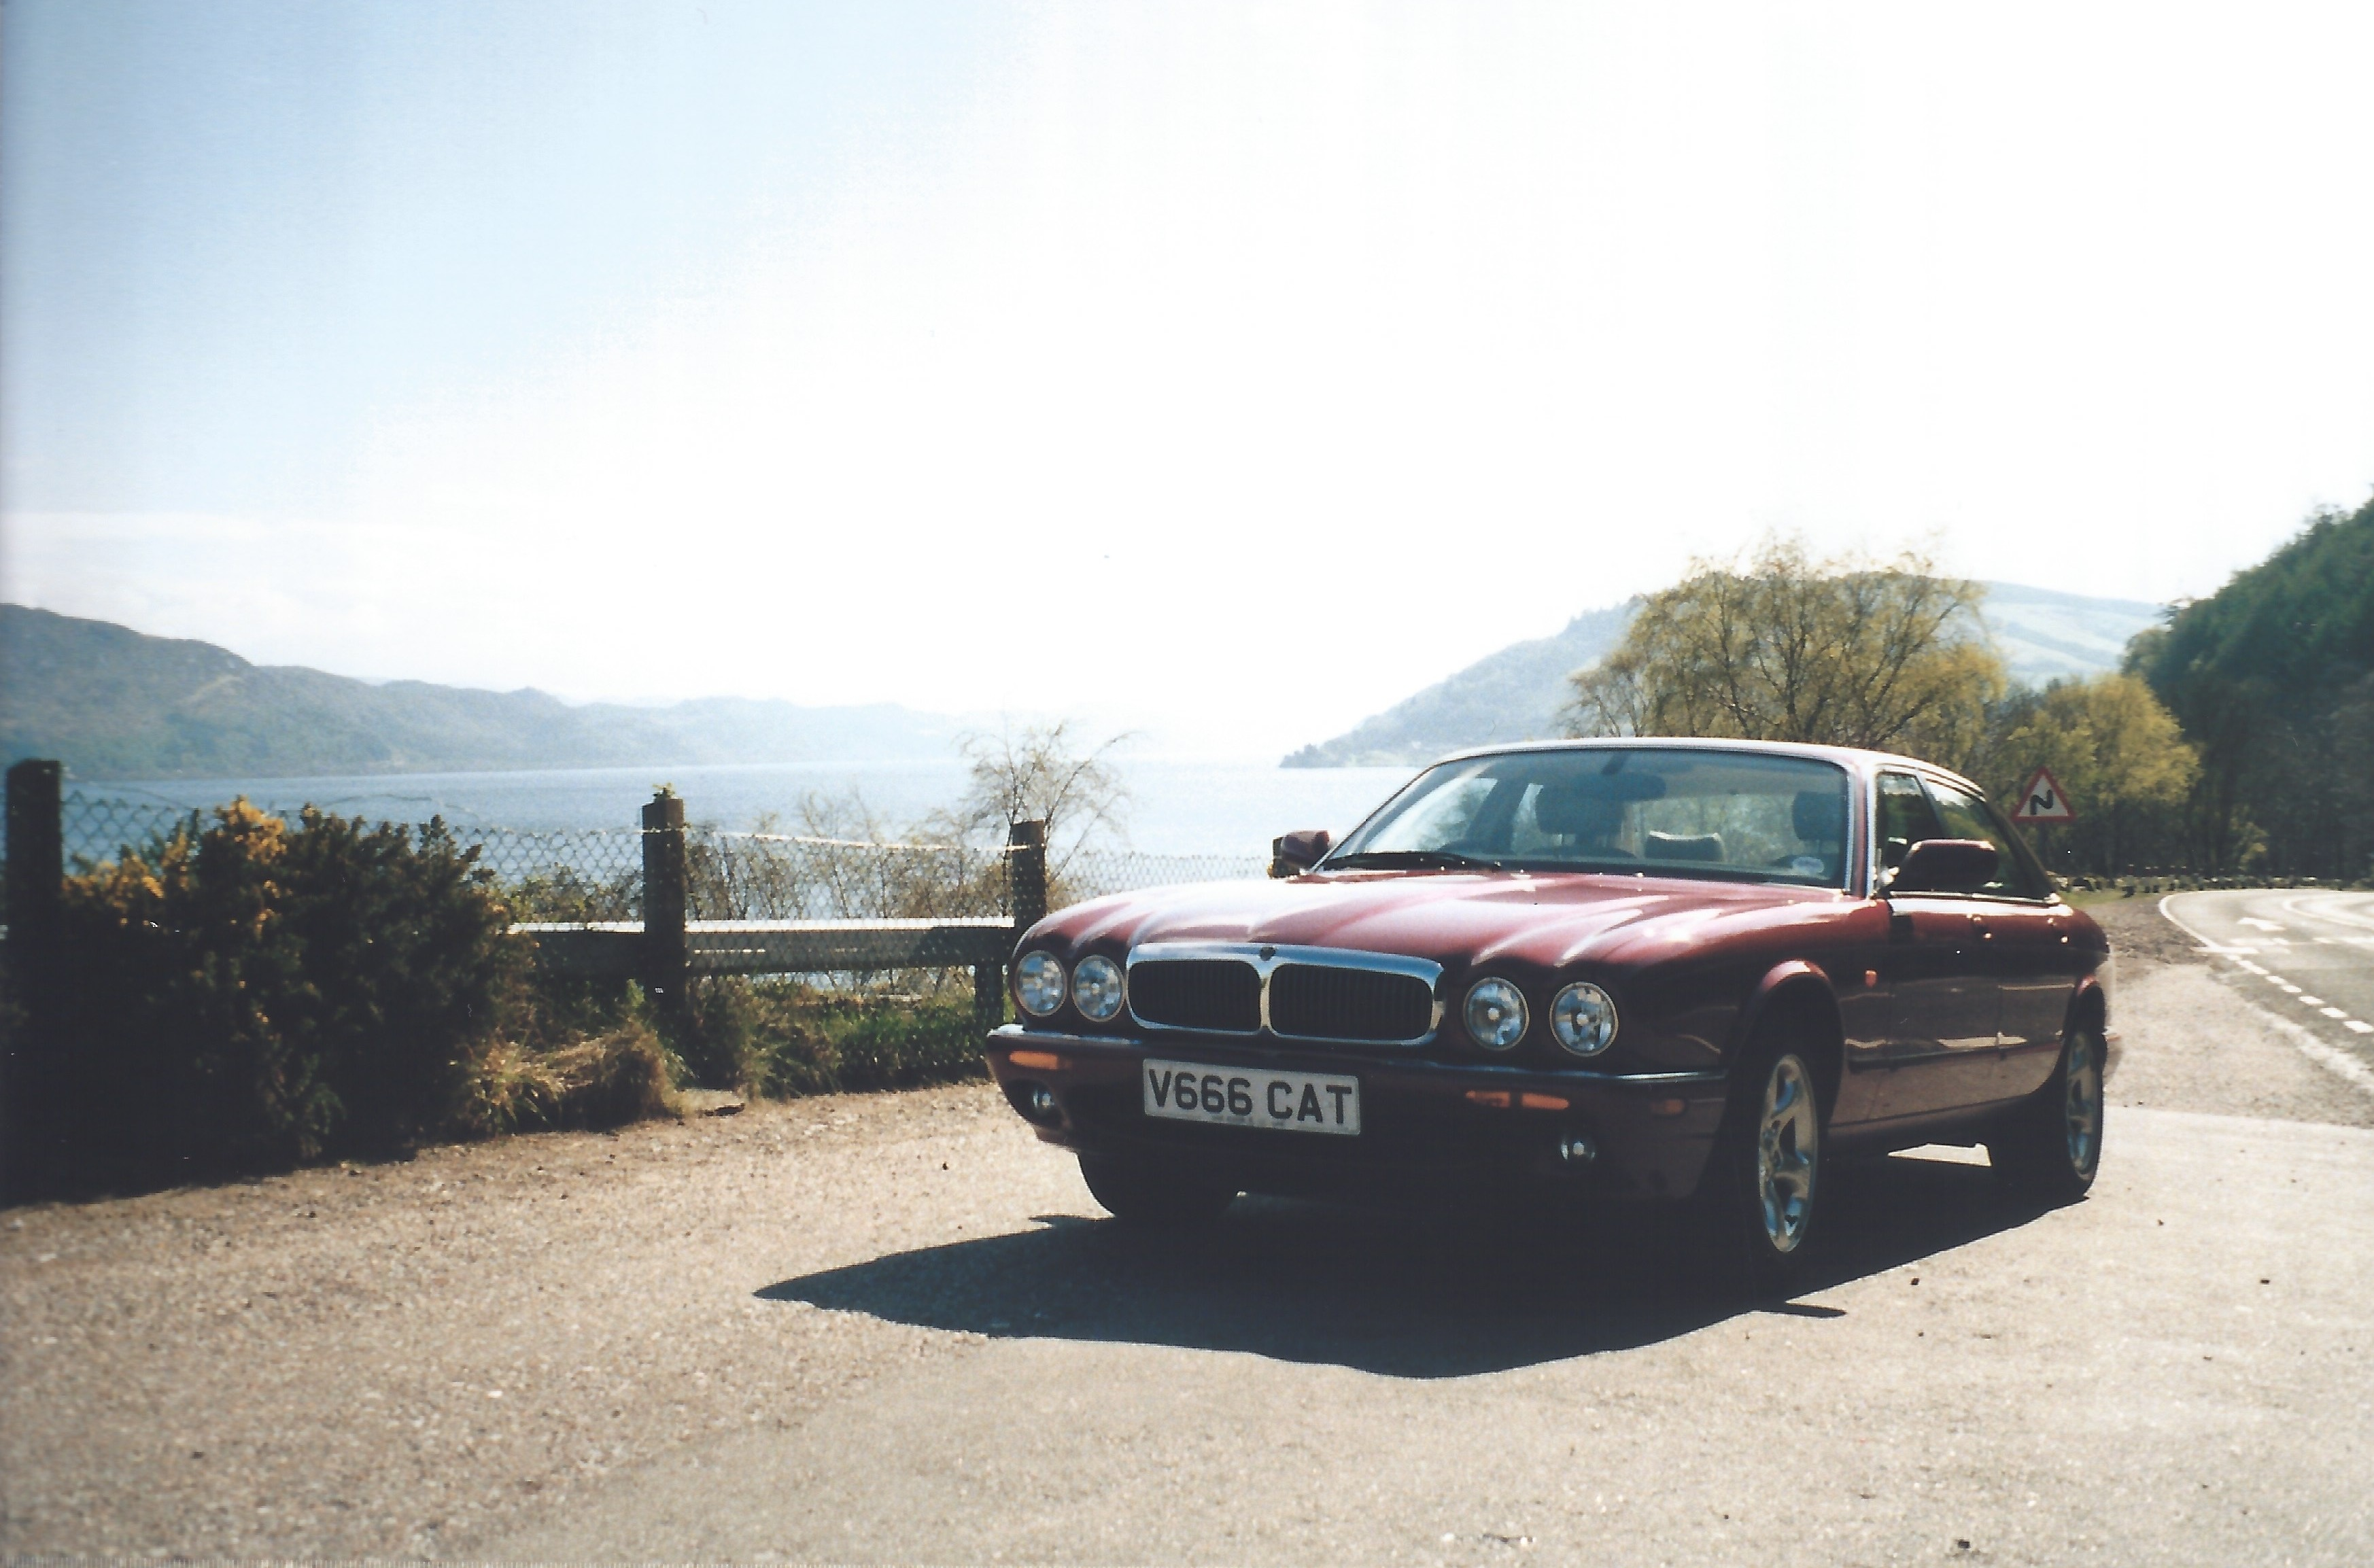 Photograph of a Jaguar XJ8 parked on the shores of Loch Ness